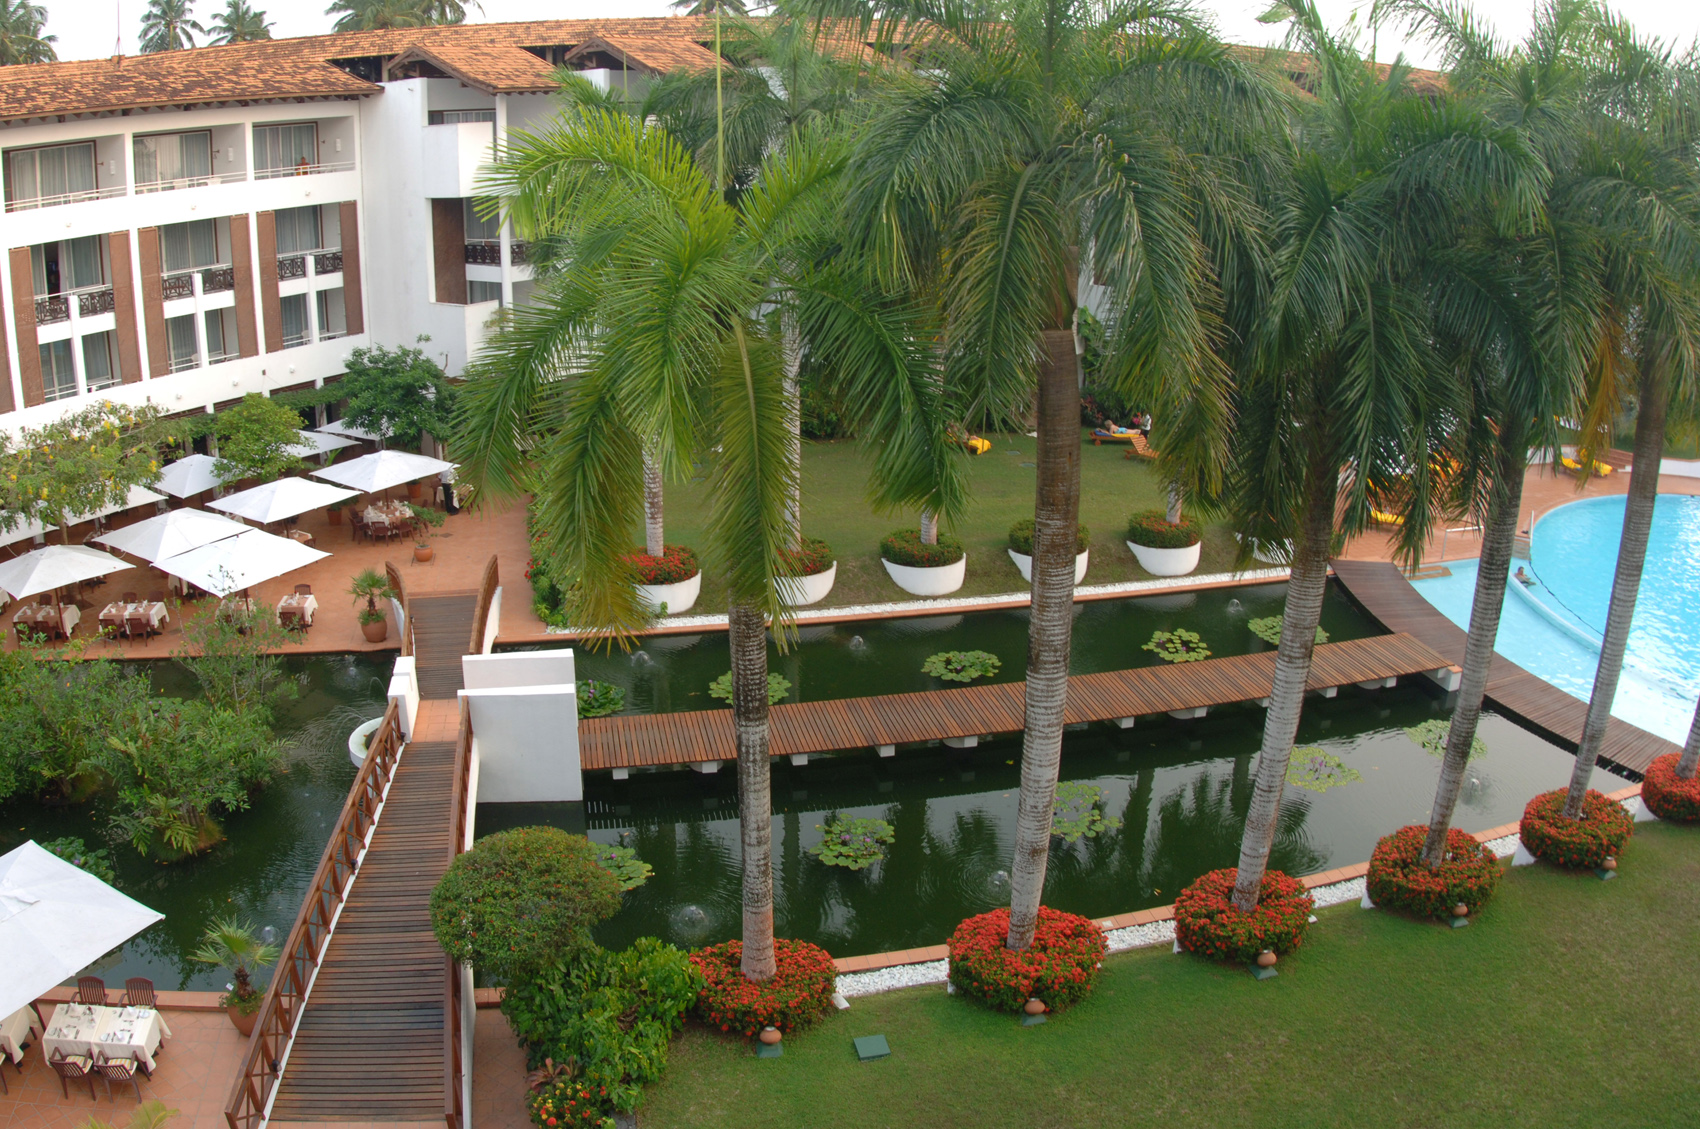 About Lanka Princess Hotel -